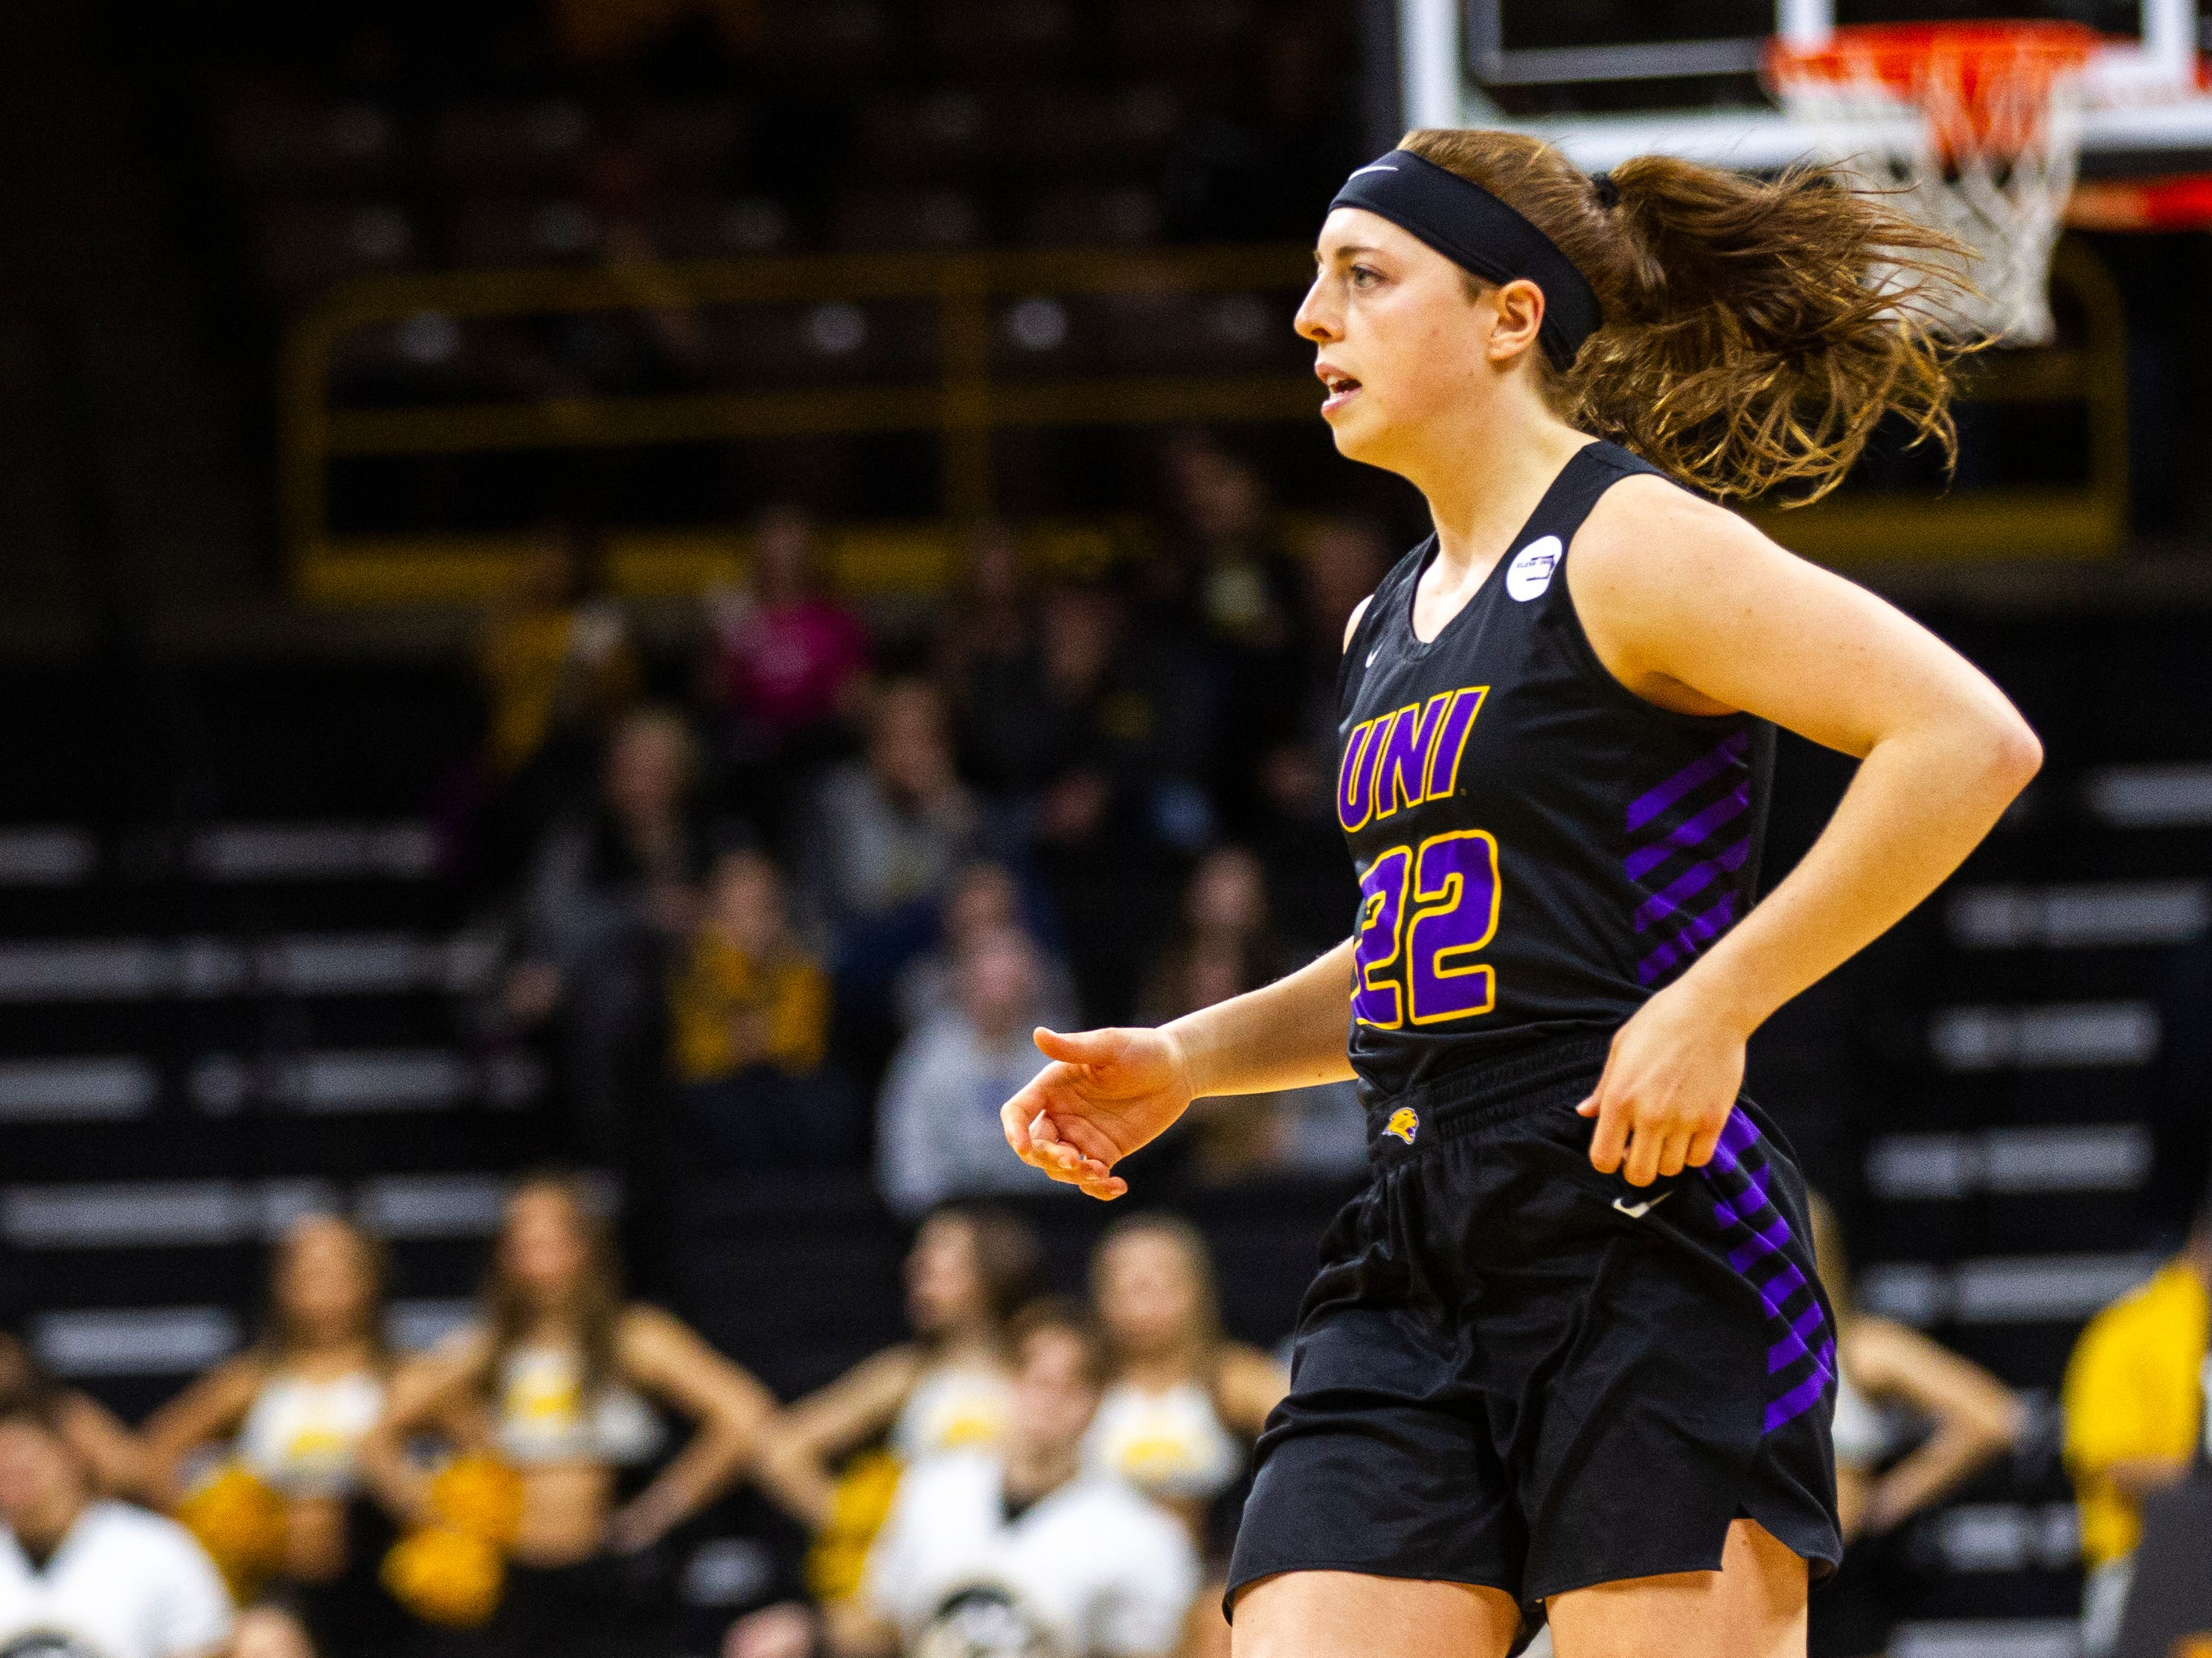 Northern Iowa guard Rose Simon-Ressler (22) is seen during a NCAA women's basketball game on Sunday, Dec. 16, 2018, at Carver-Hawkeye Arena in Iowa City.